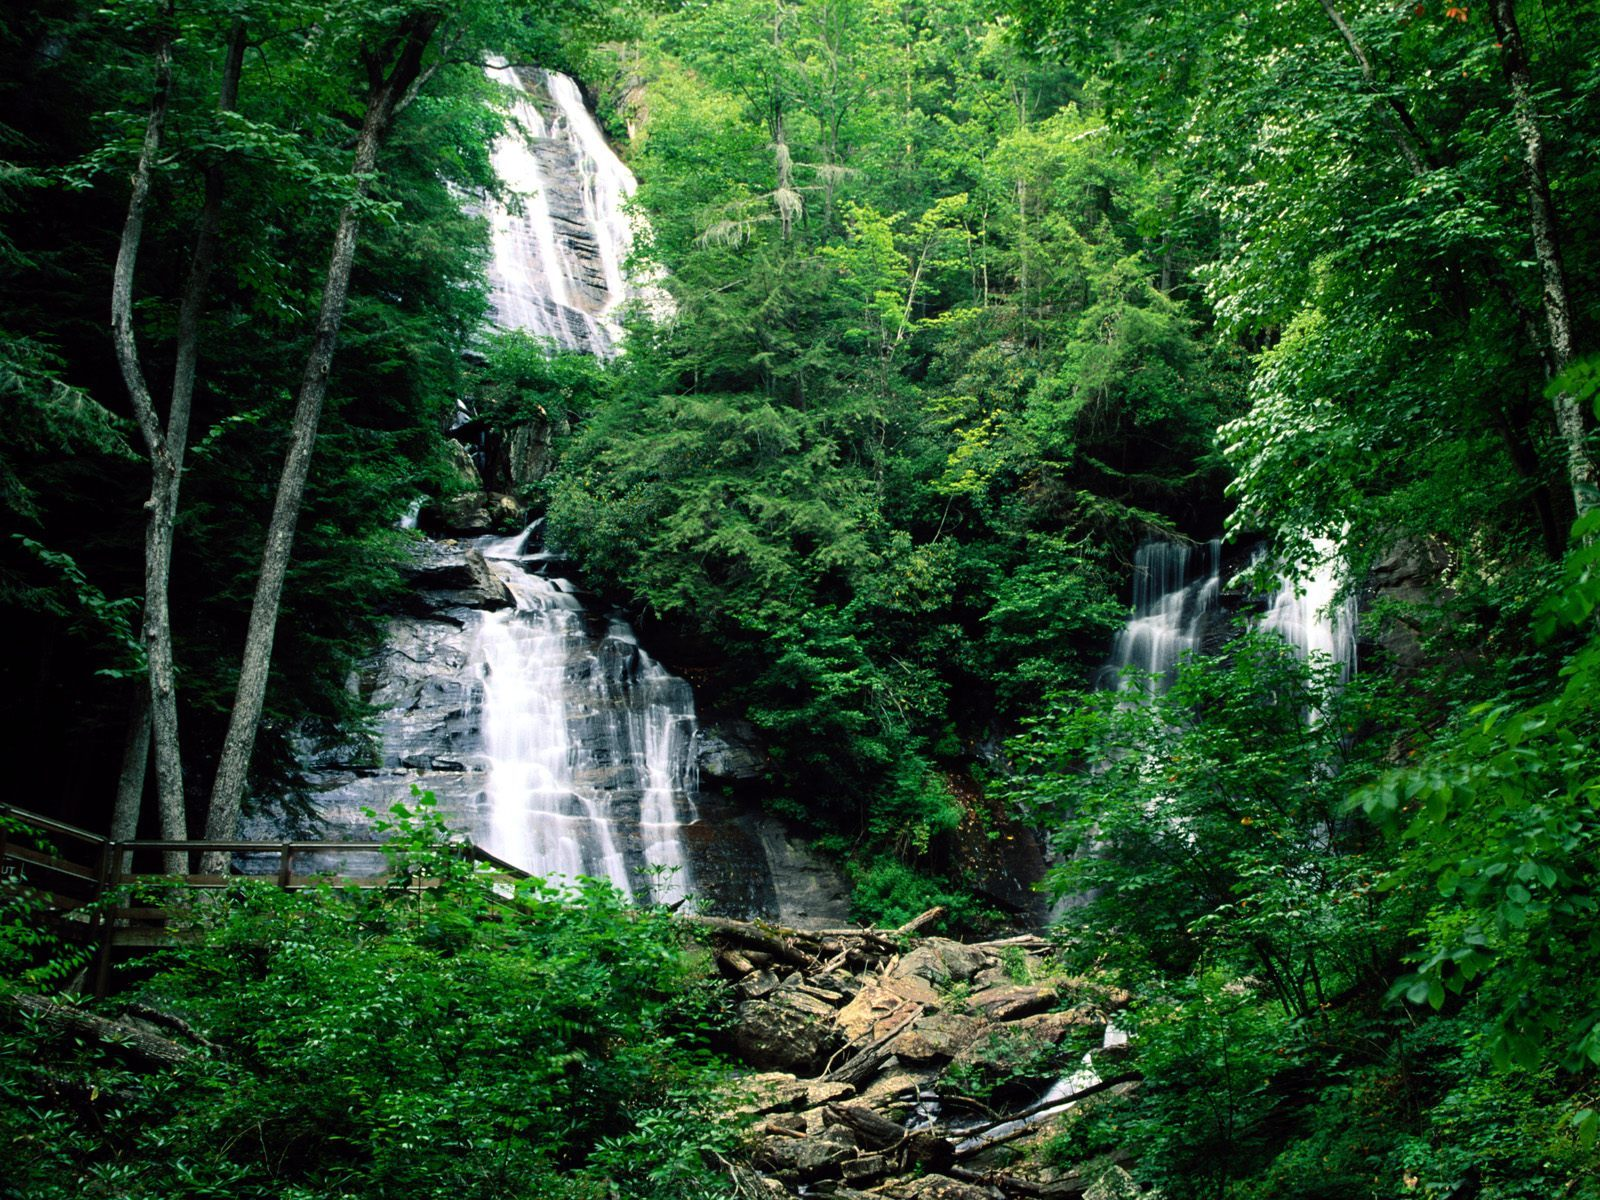 14662 download wallpaper Plants, Landscape, Waterfalls screensavers and pictures for free